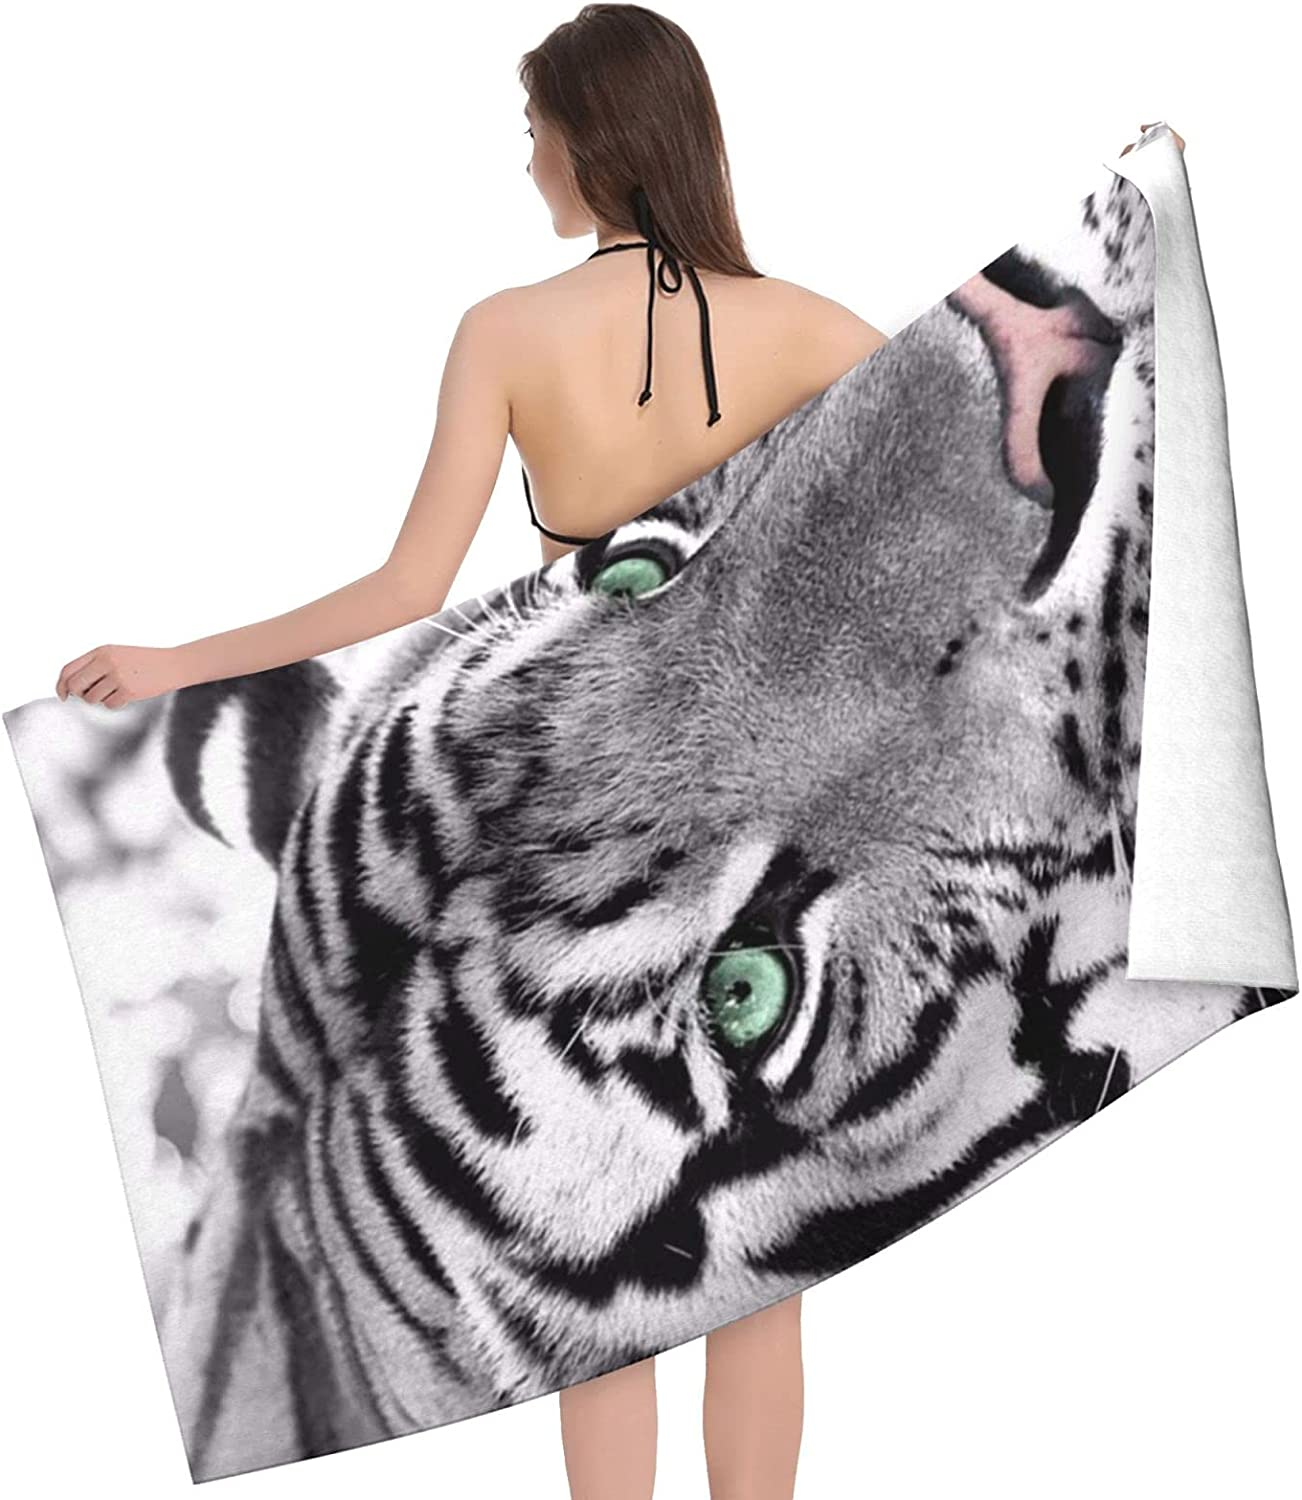 Black White Tiger Print Adult Towels Double - Beach Super Special SALE 35% OFF held Towel